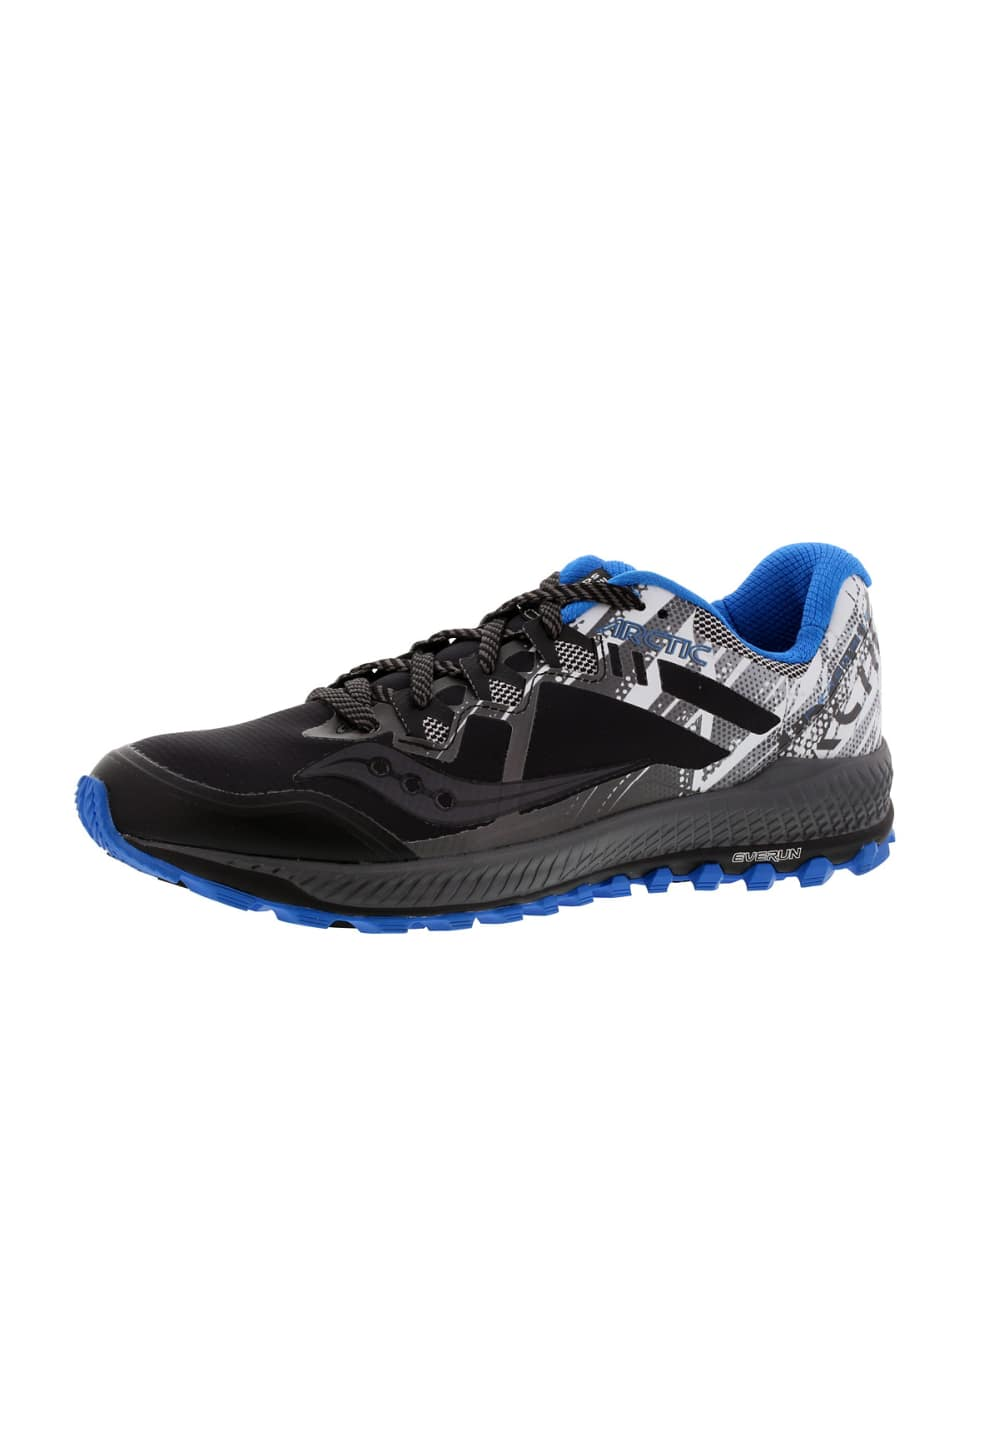 74937726 Saucony Peregrine 8 Ice+ - Running shoes for Men - Black